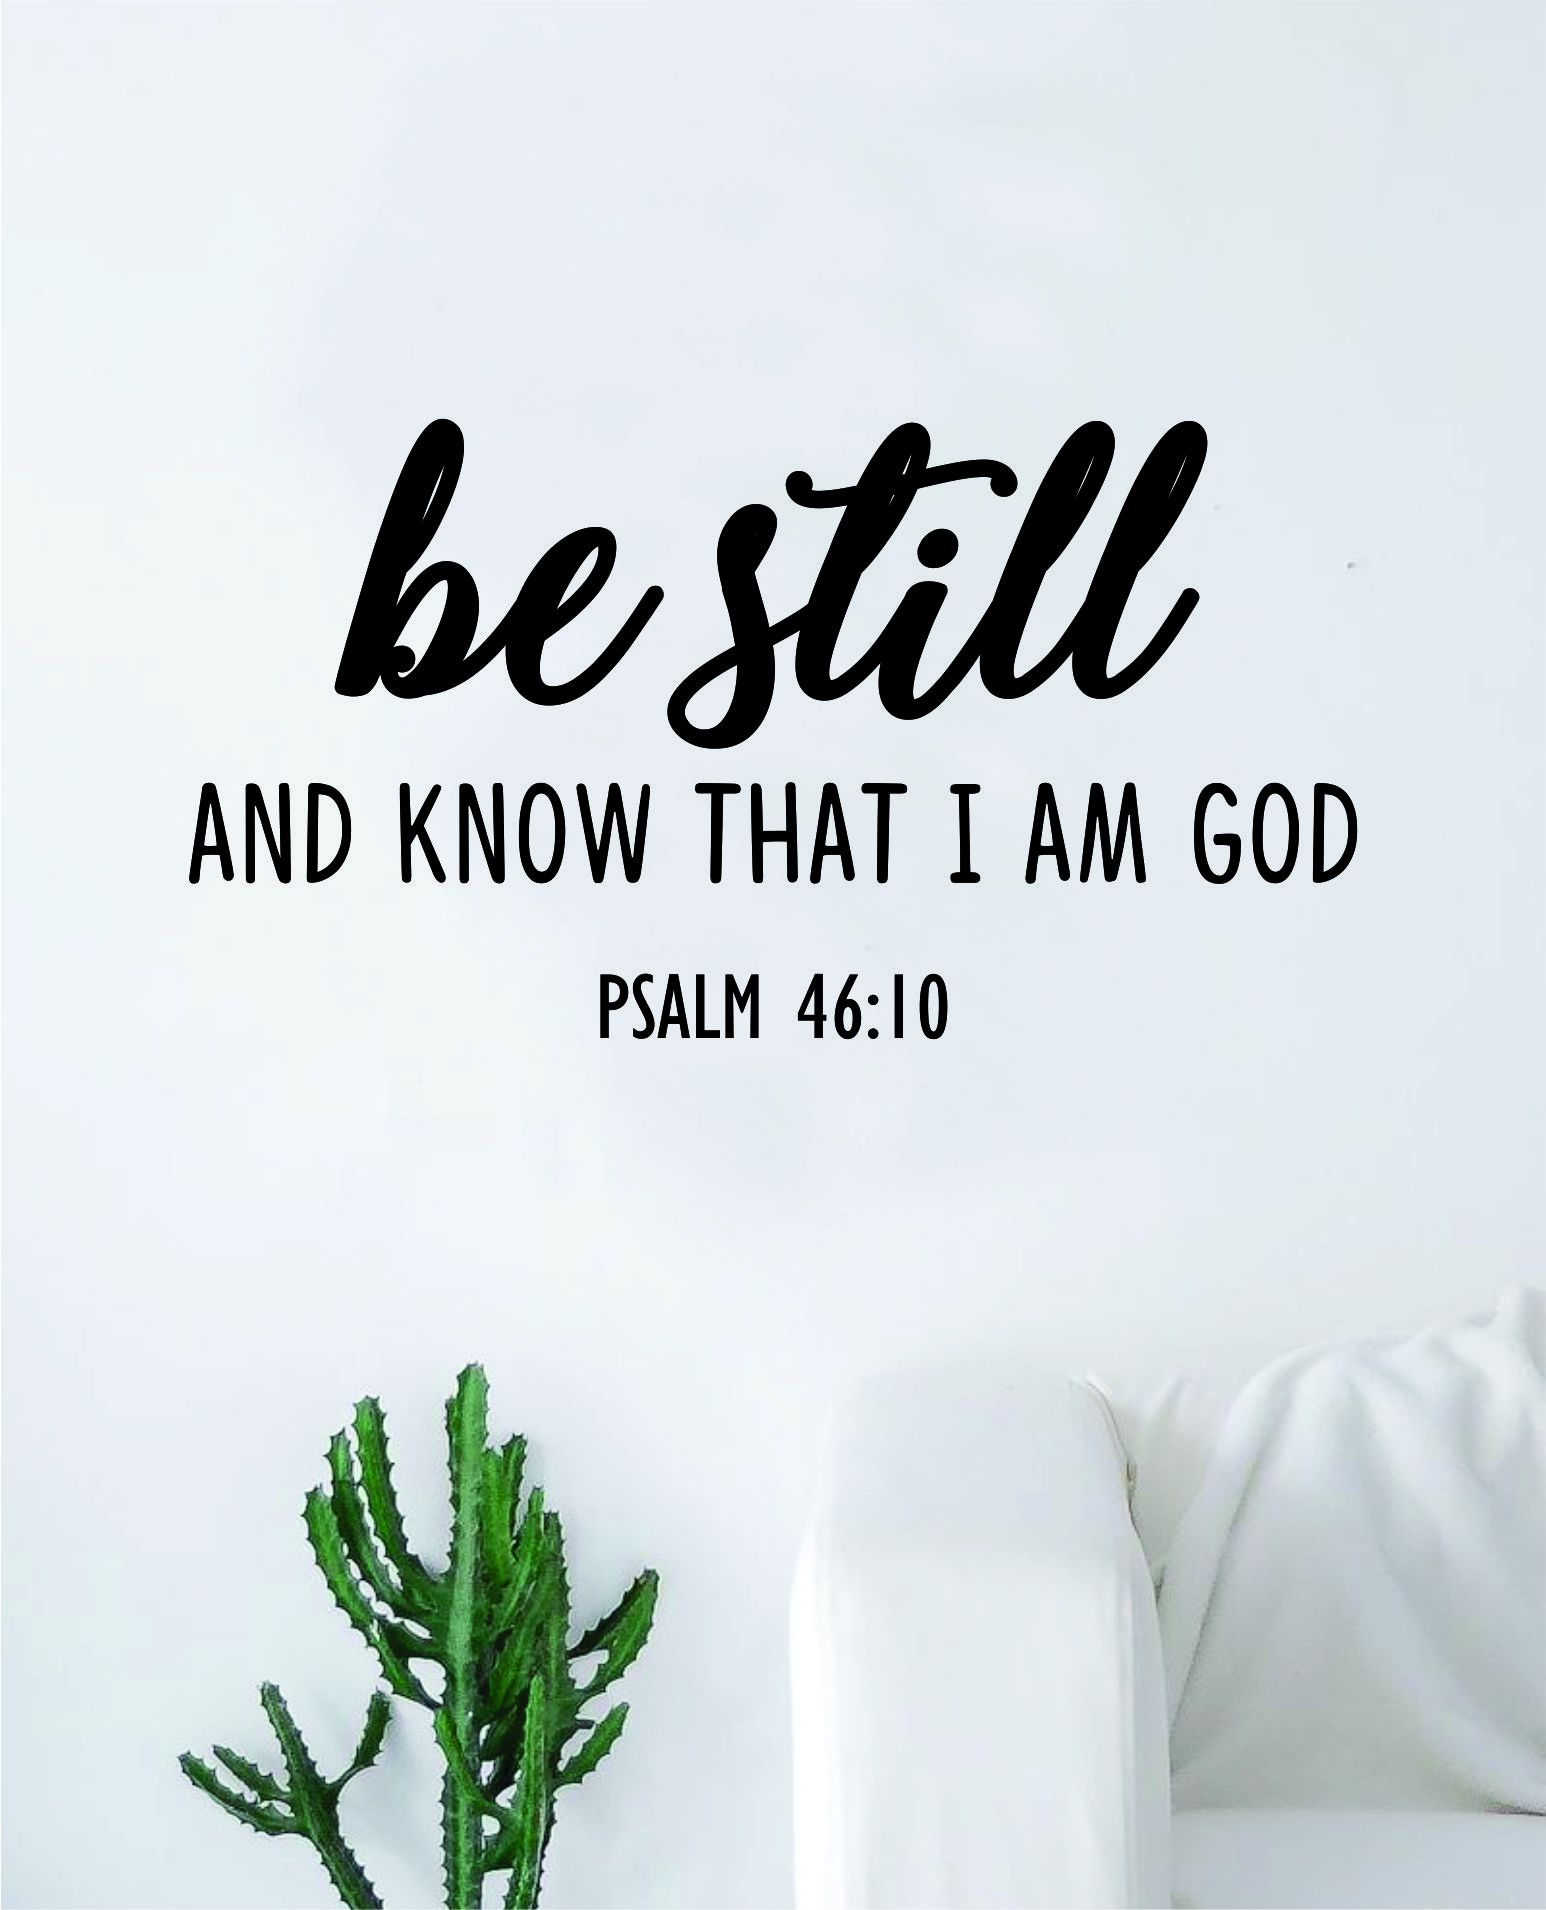 Be Still Know That I Am God Psalm Quote Wall Decal Sticker Bedroom Home Room Art Vinyl Inspirational Motivational Teen Decor Religious Bible Verse God Blessed Spiritual - saphire blue